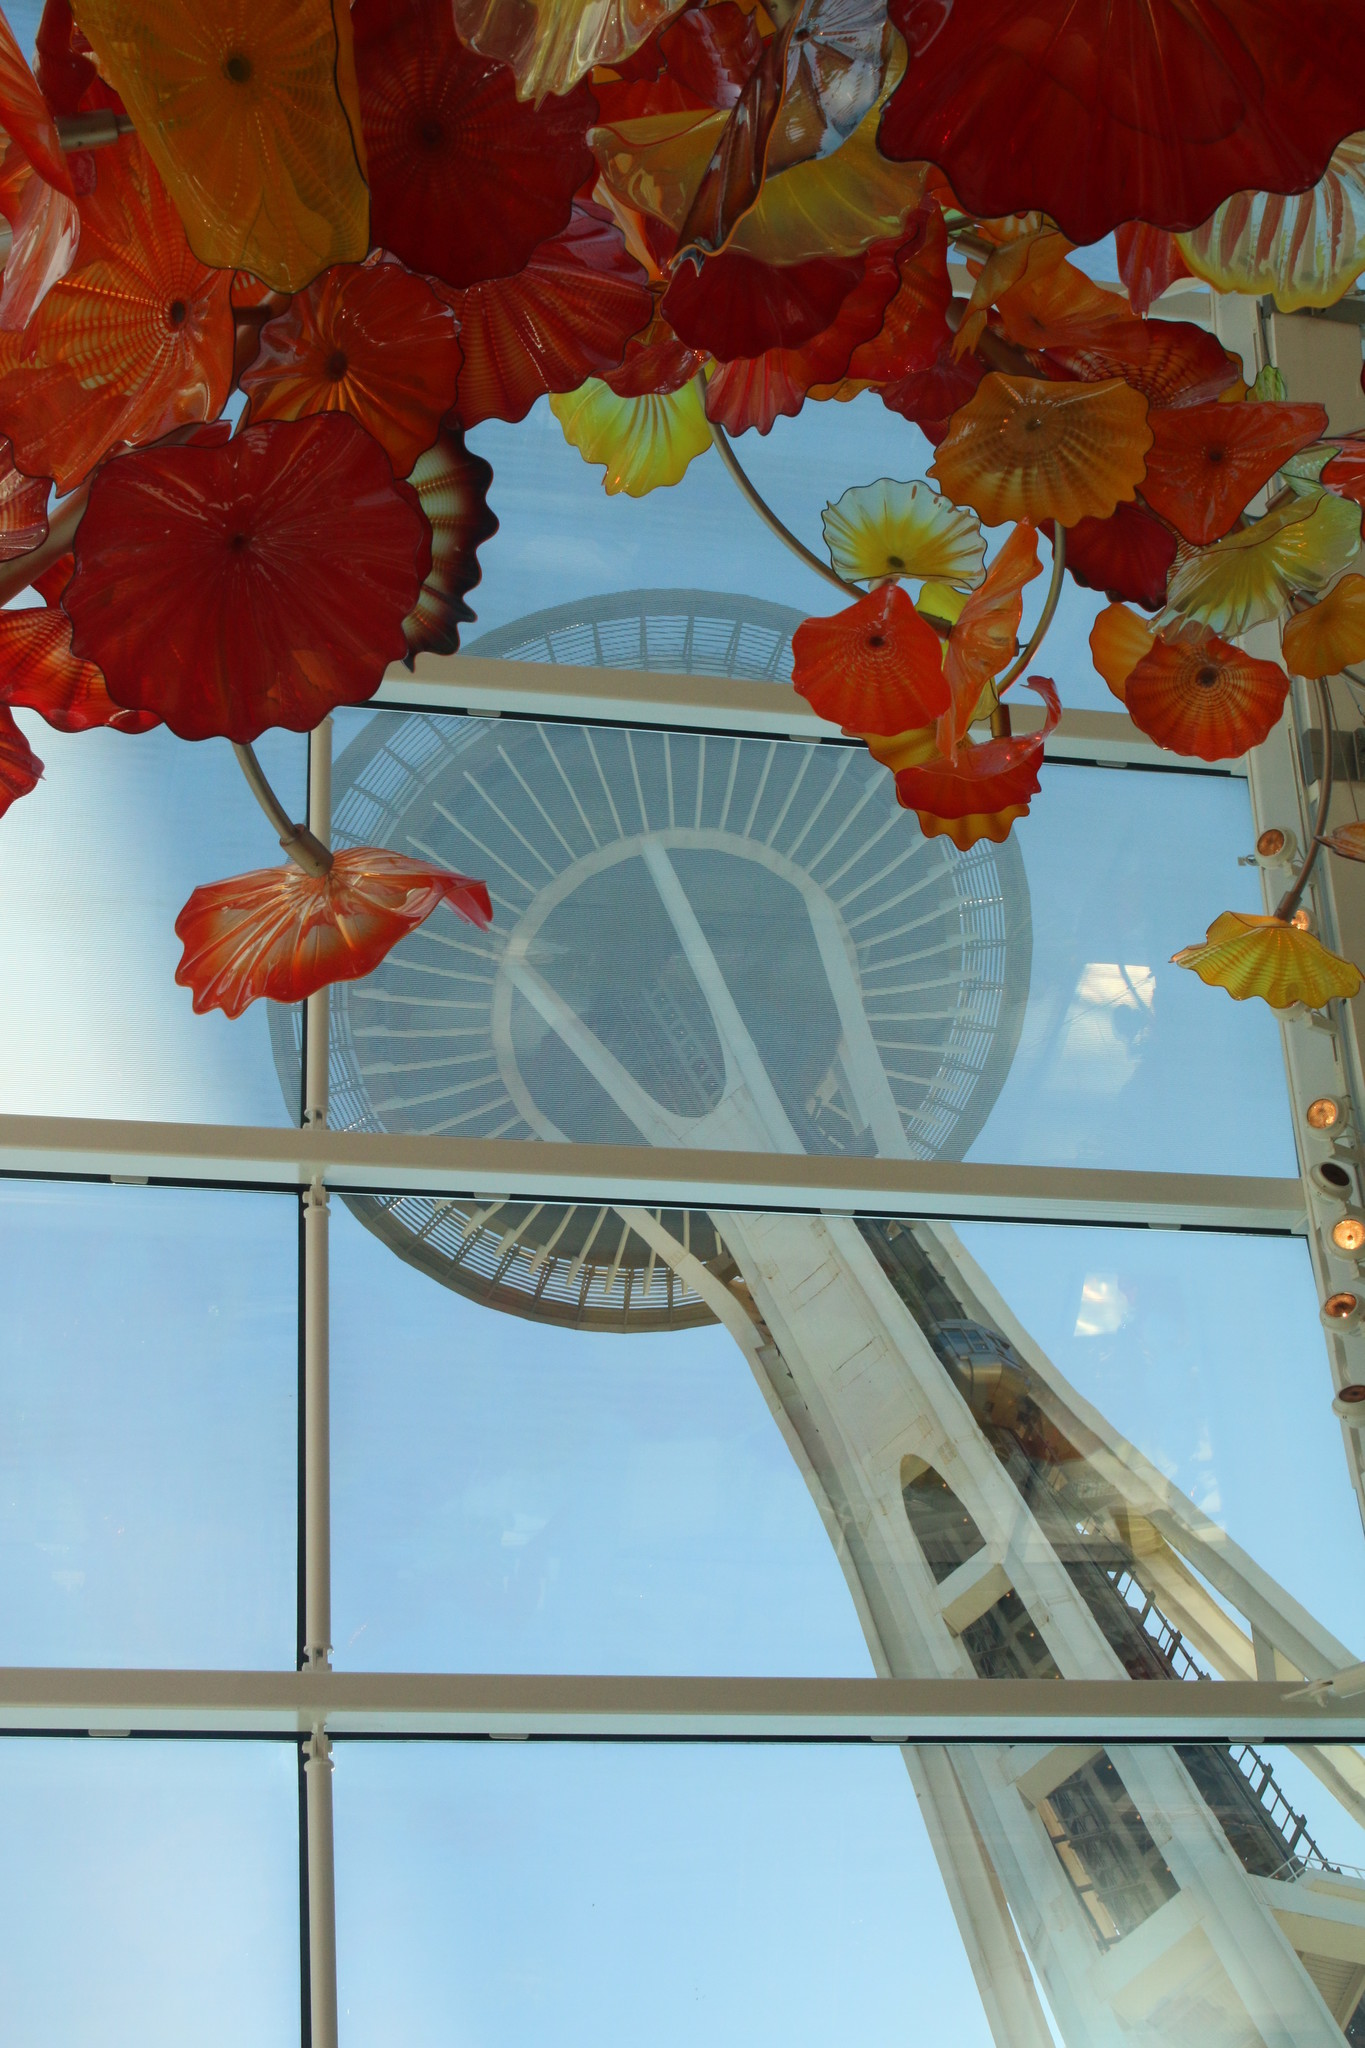 Chihuly Glass House and Gardens near the Space Needle in Seattle.